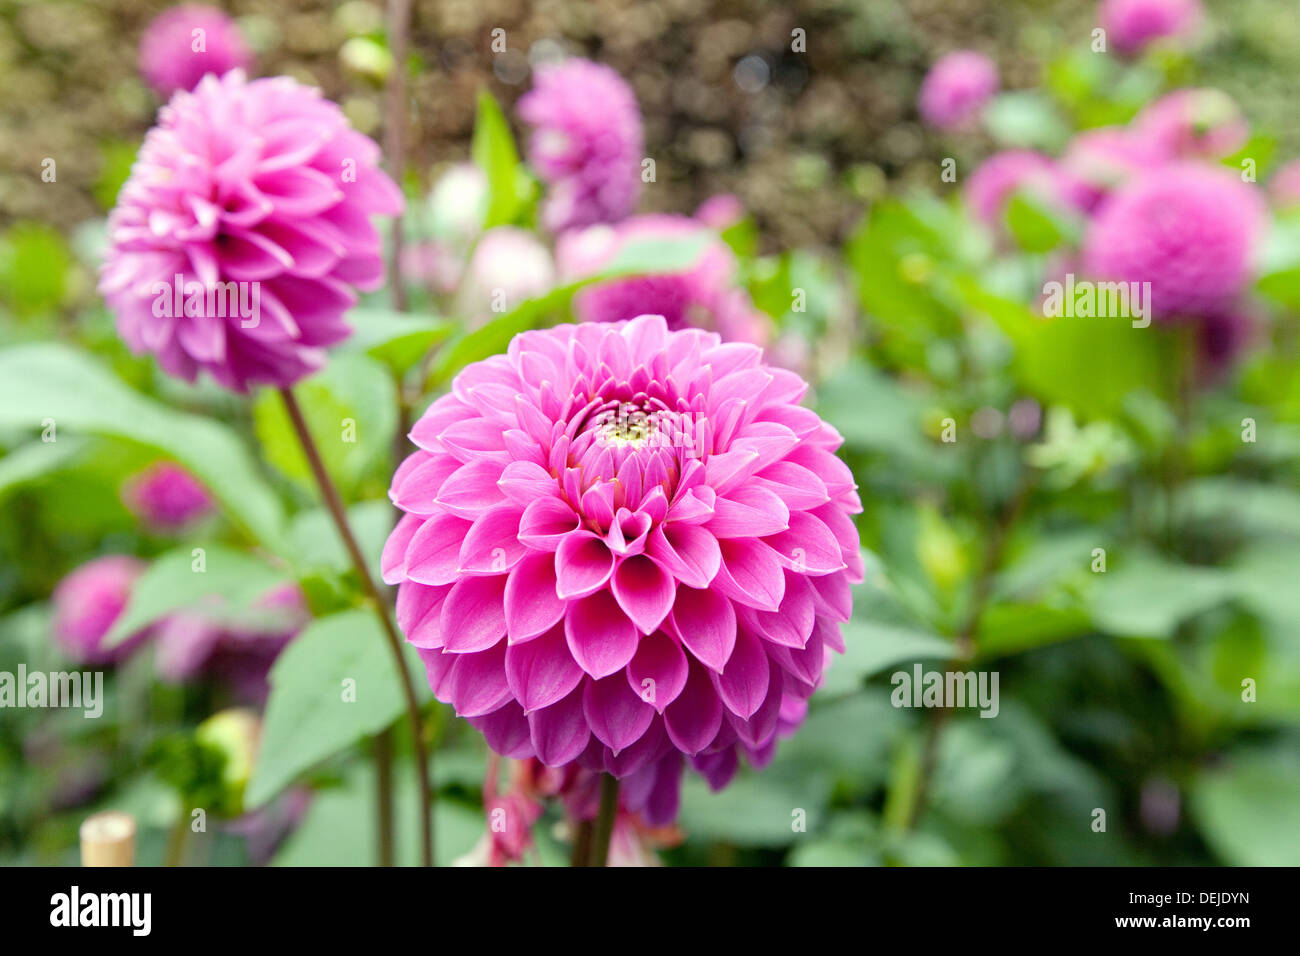 Purple dahlias flowers stock photos purple dahlias flowers stock dahlia dahlias flowers variety marys jomanda cambridgeshire uk stock image izmirmasajfo